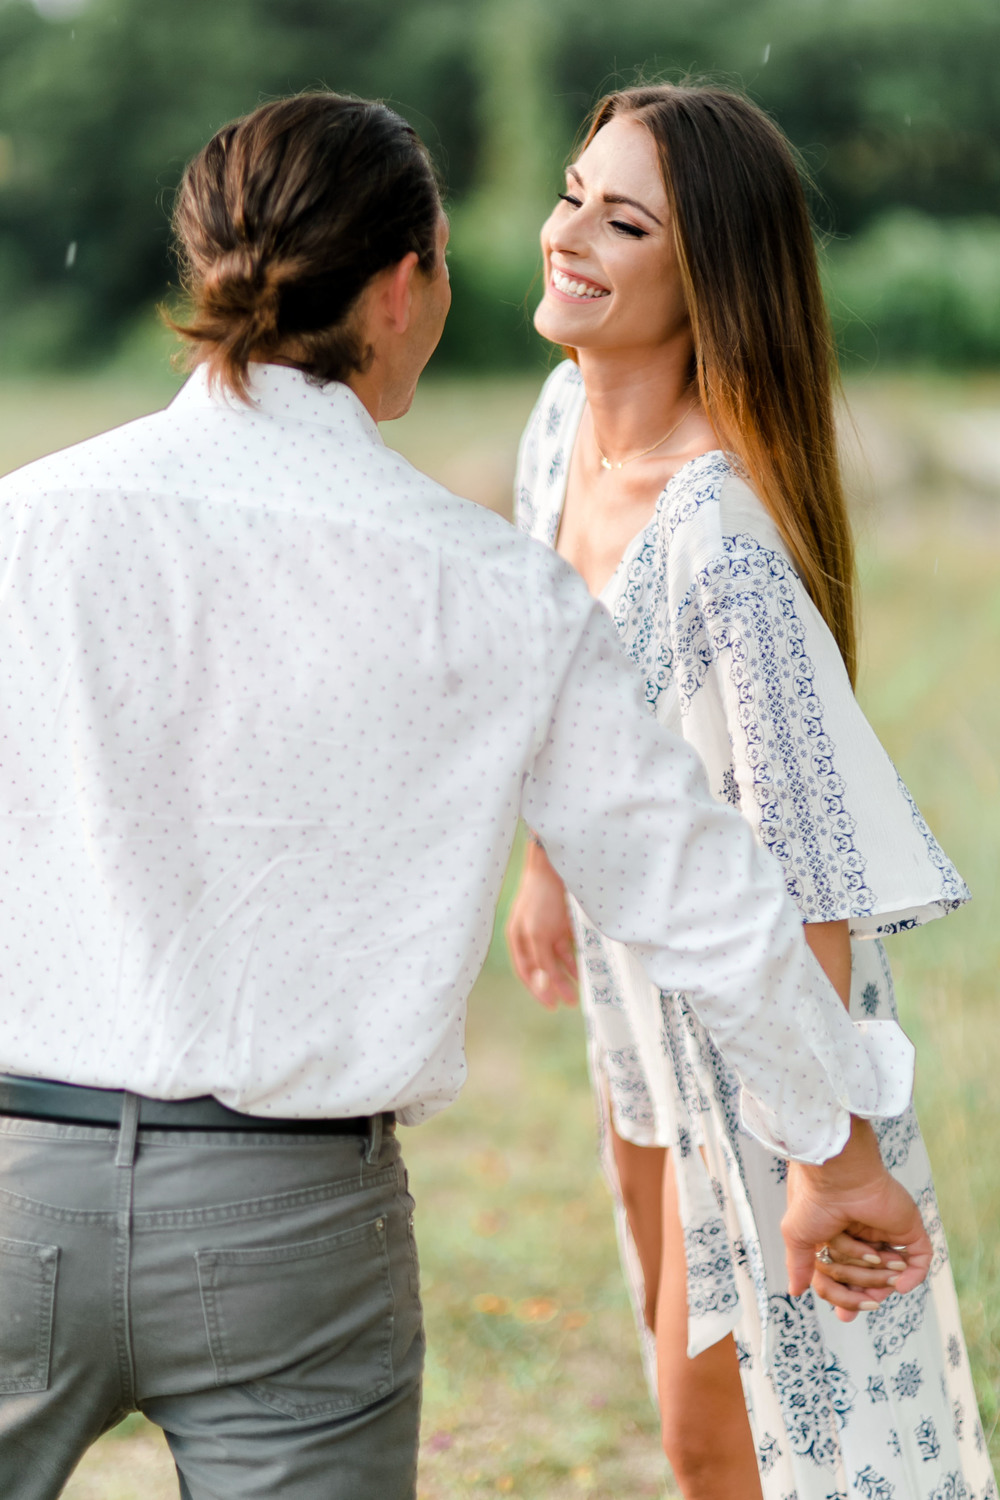 camp-lucy-boho-engagement-session-austin-texas-wedding-photographer-01.jpg